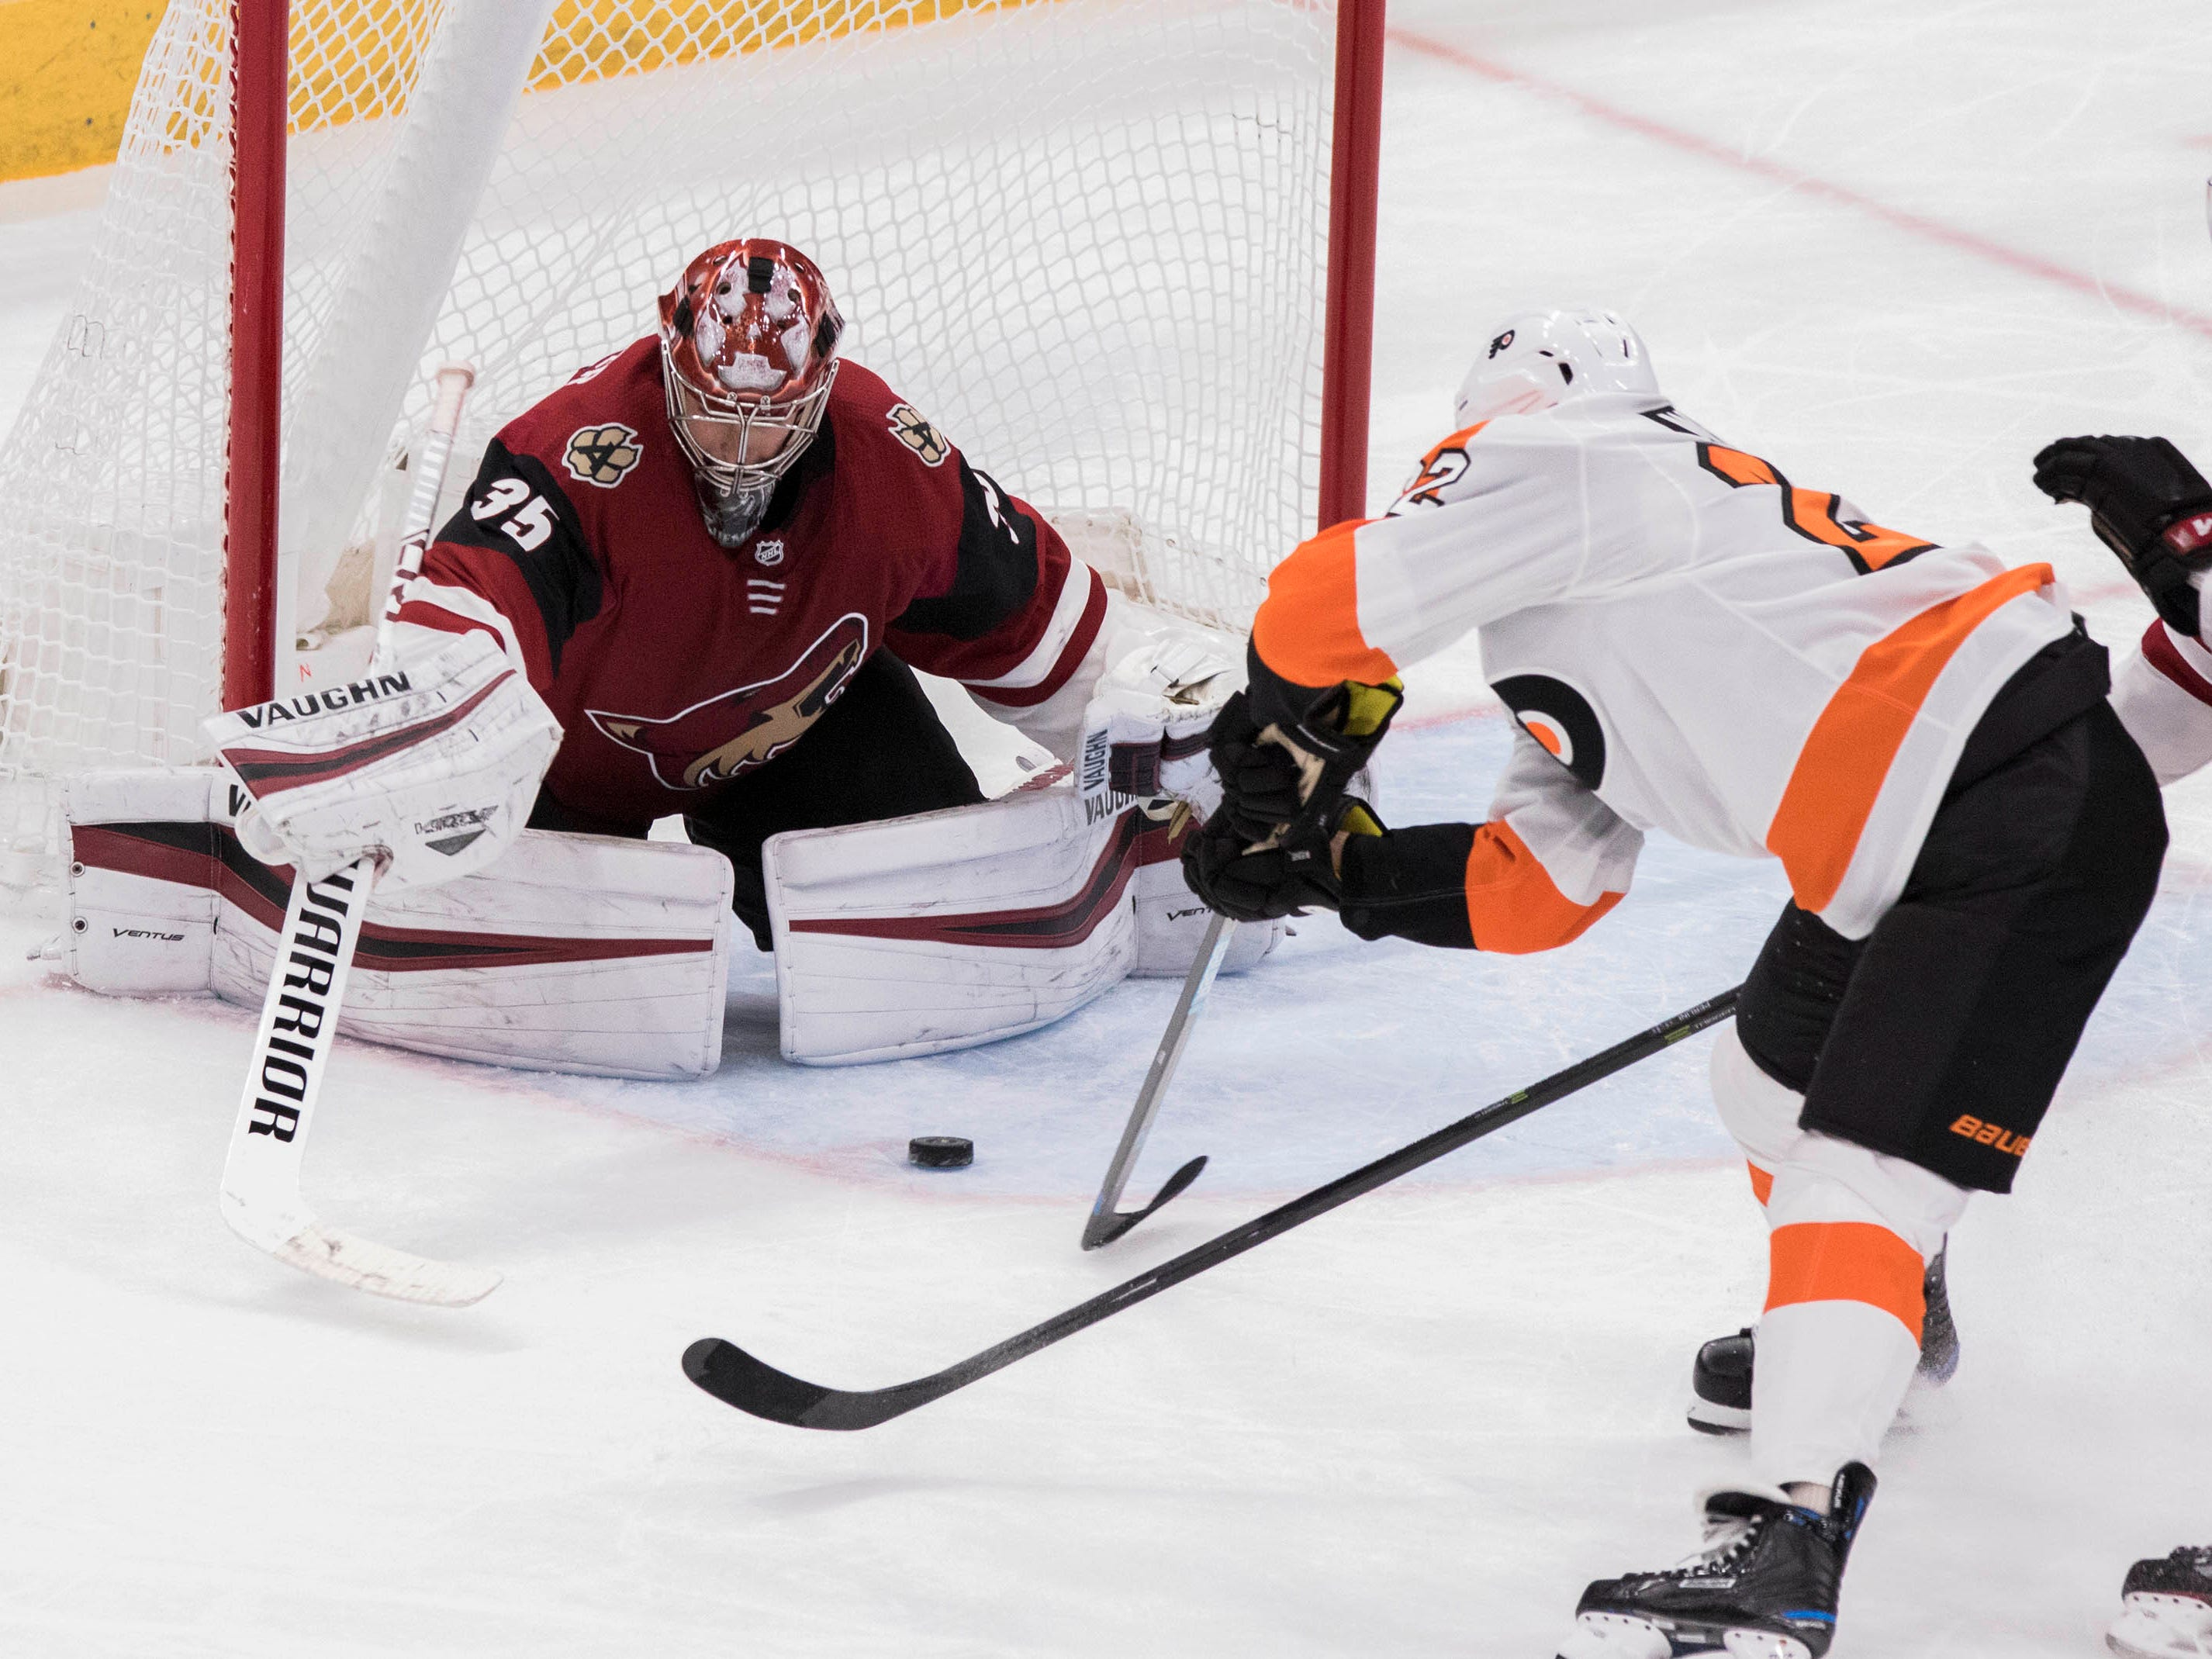 Arizona Coyotes goalie Darcy Kuemper (35) blocks a shot against the Philadelphia Flyers' Dale Weise (22) during the third period of an NHL hockey game, Monday, Nov. 5, 2018, in Glendale, Ariz. (AP Photo/Darryl Webb)